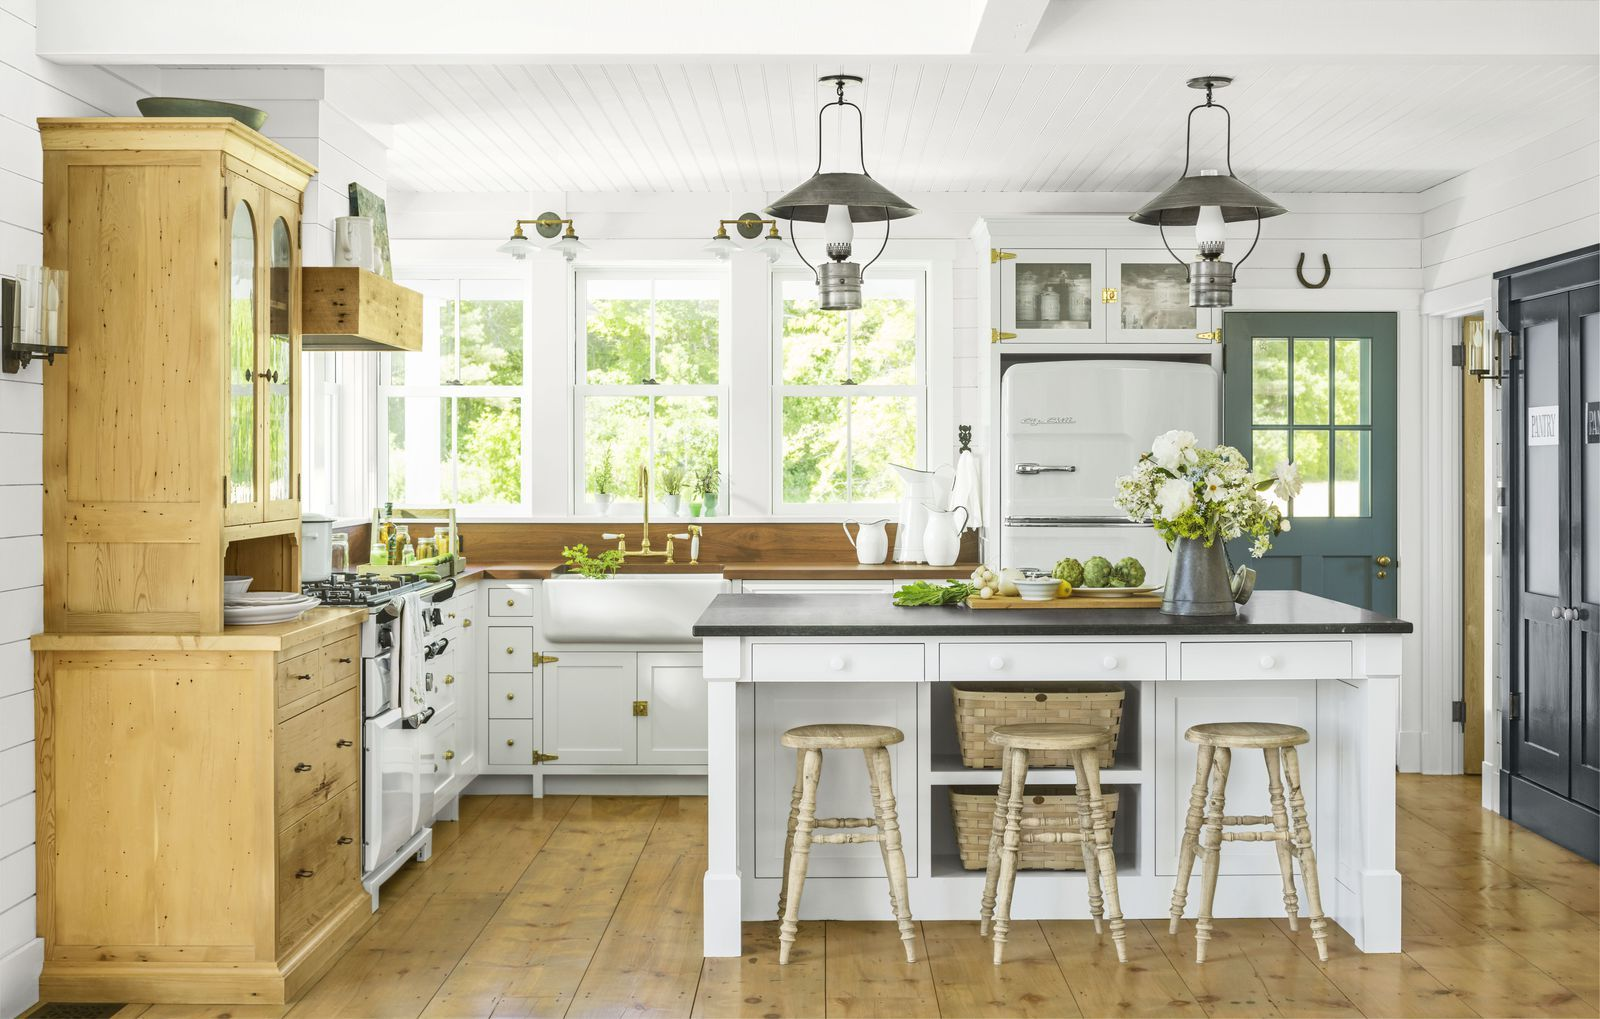 32 Kitchen Trends For 2020 That We Predict Will Be Everywhere Country Kitchen Designs Rustic Kitchen Rustic Farmhouse Kitchen